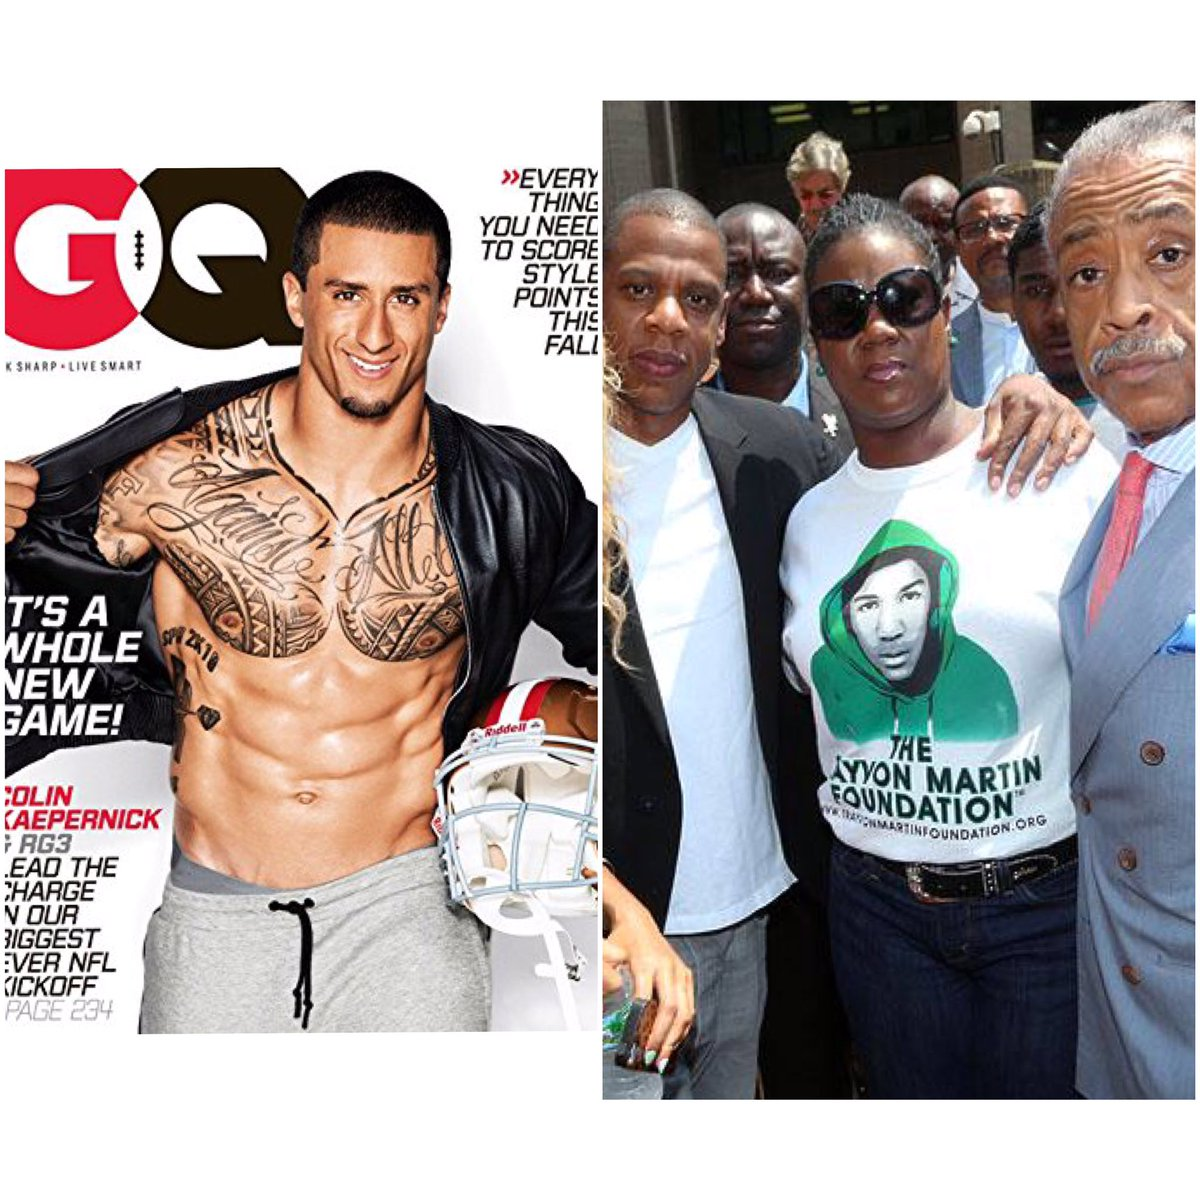 These pictures were talking In 2013 at the height on the BLM movement. In the GQ article there were no mention on social injustice from from Huey. Same with 2014. Meanwhile guess who was out there bailing Ferguson protesters out of prison .... you guest it  MUTE TILL 2016 <br>http://pic.twitter.com/ApJyOyXo9t